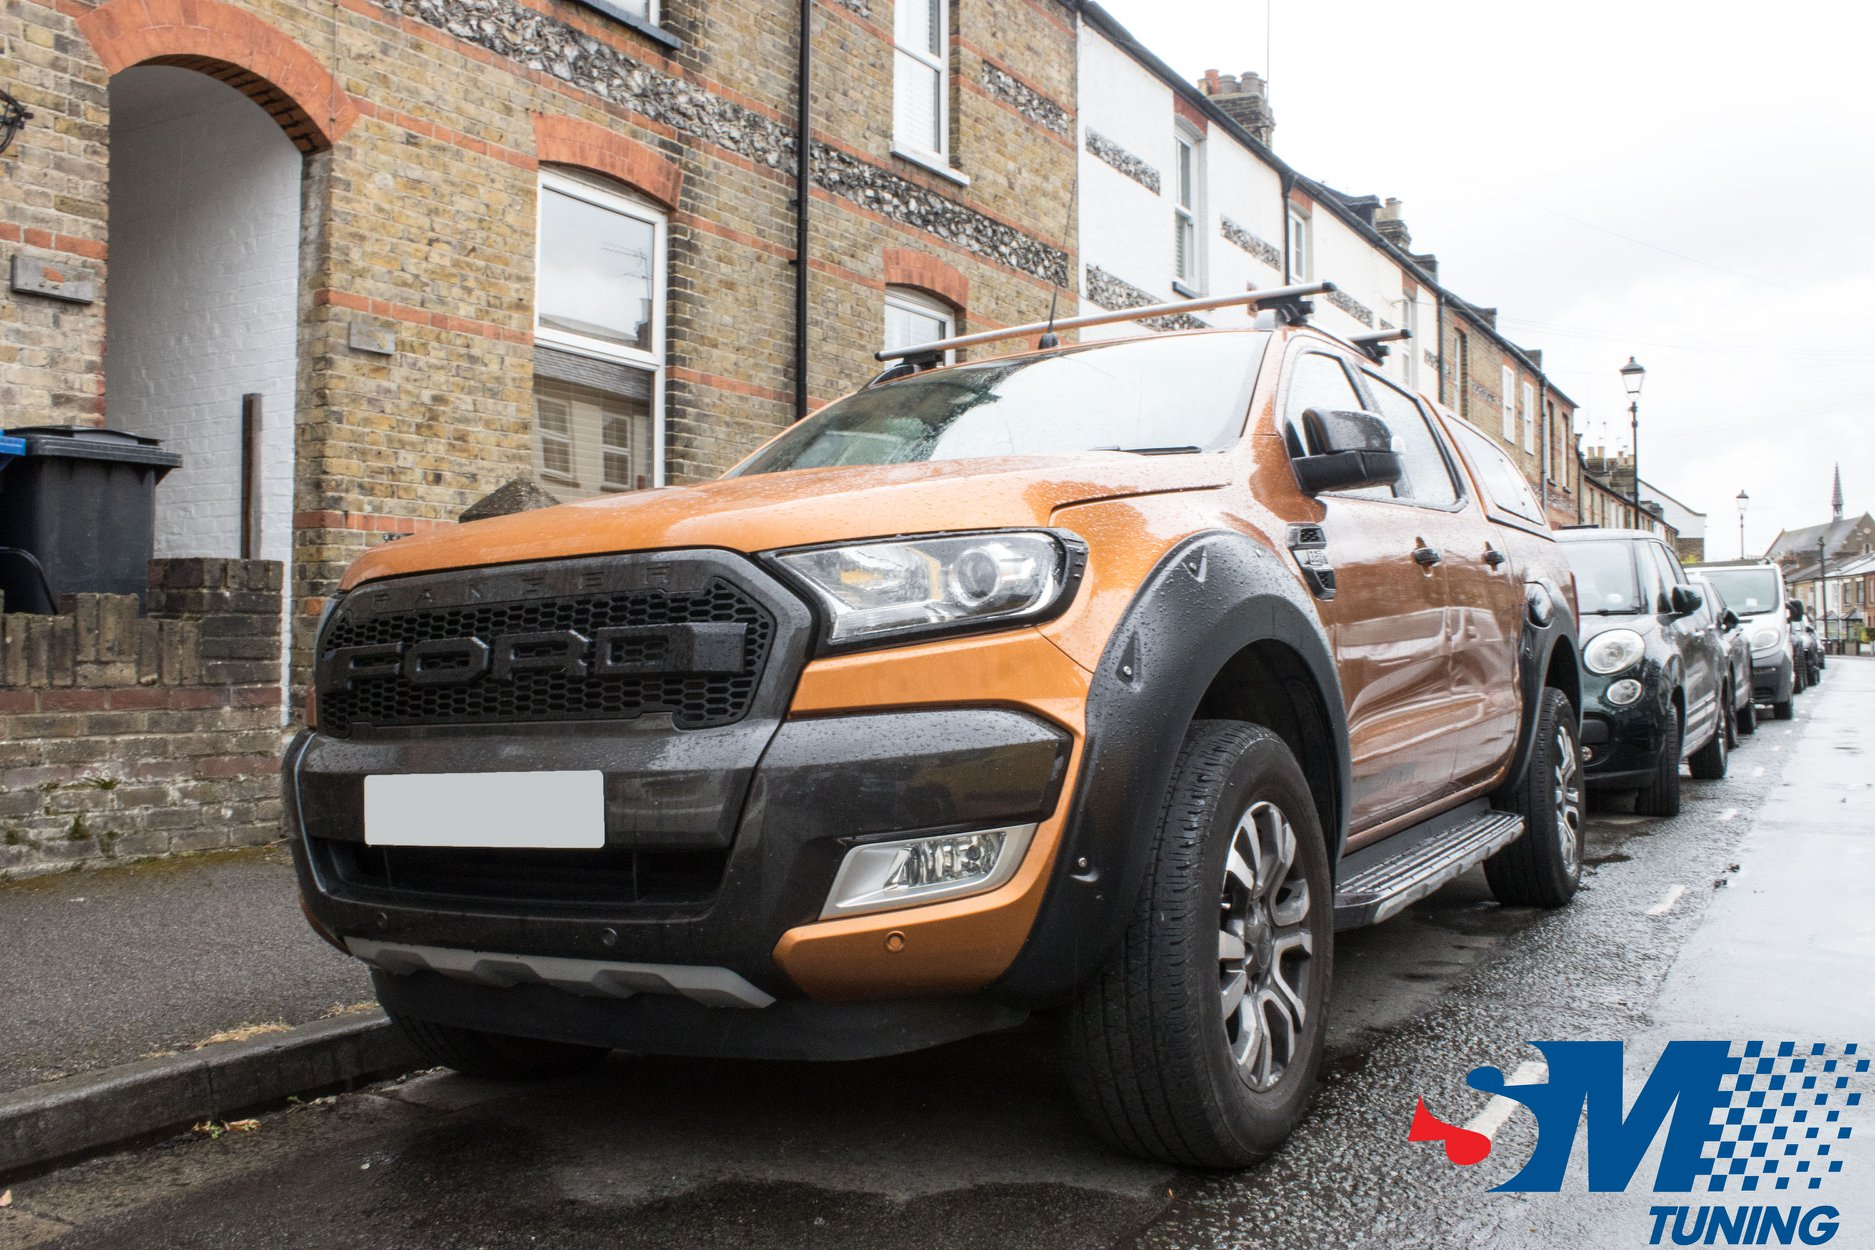 Ford Ranger 2016 tuned in Windsor, Berkshire